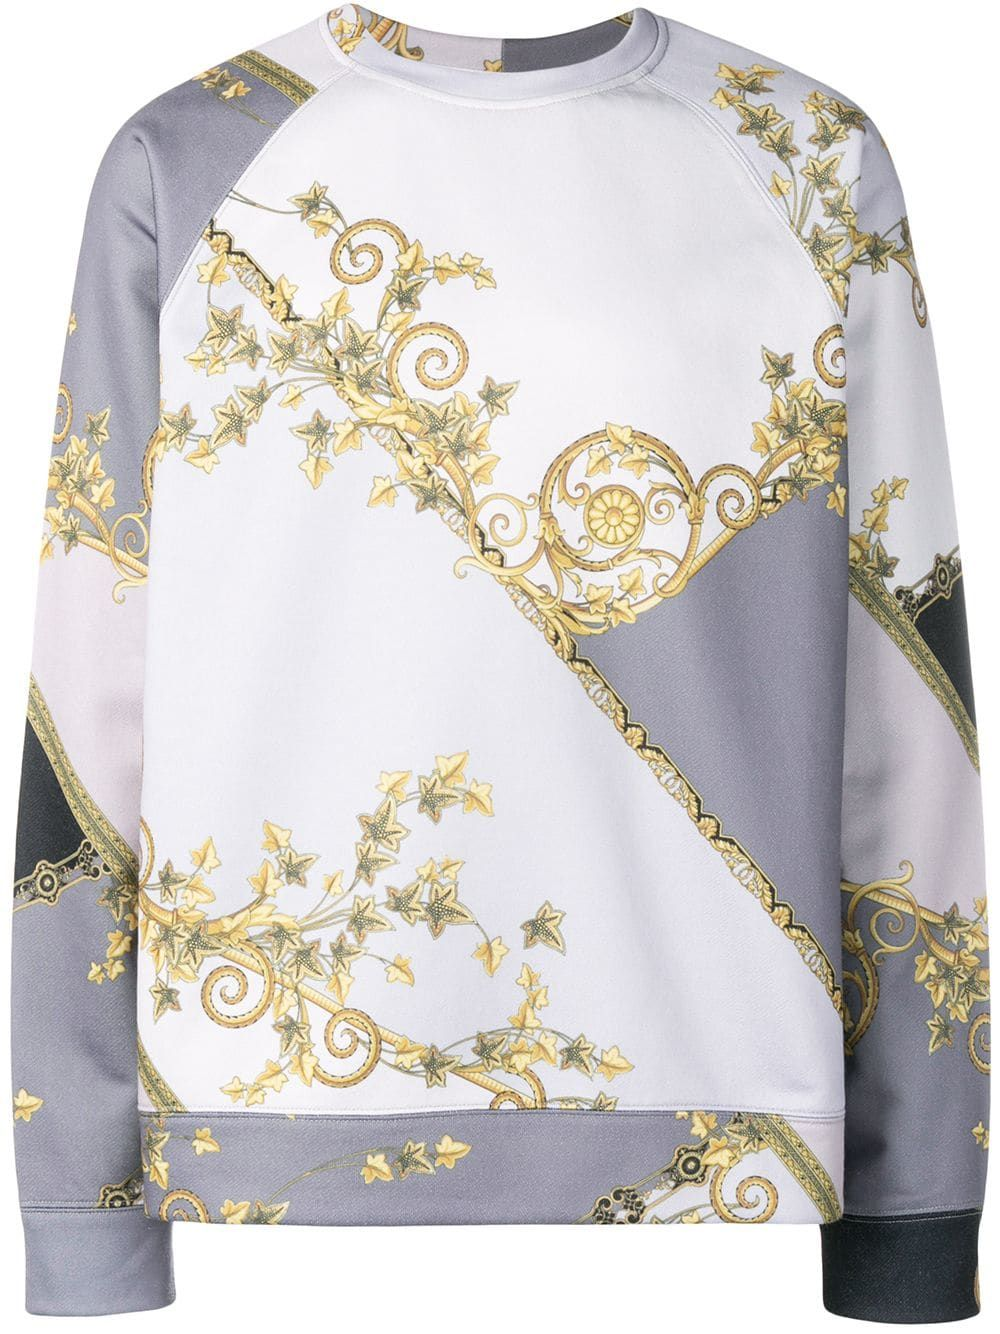 491f418f VERSACE VERSACE COLLECTION GOLD LEAF PRINT SWEATSHIRT - GREY. #versace  #cloth